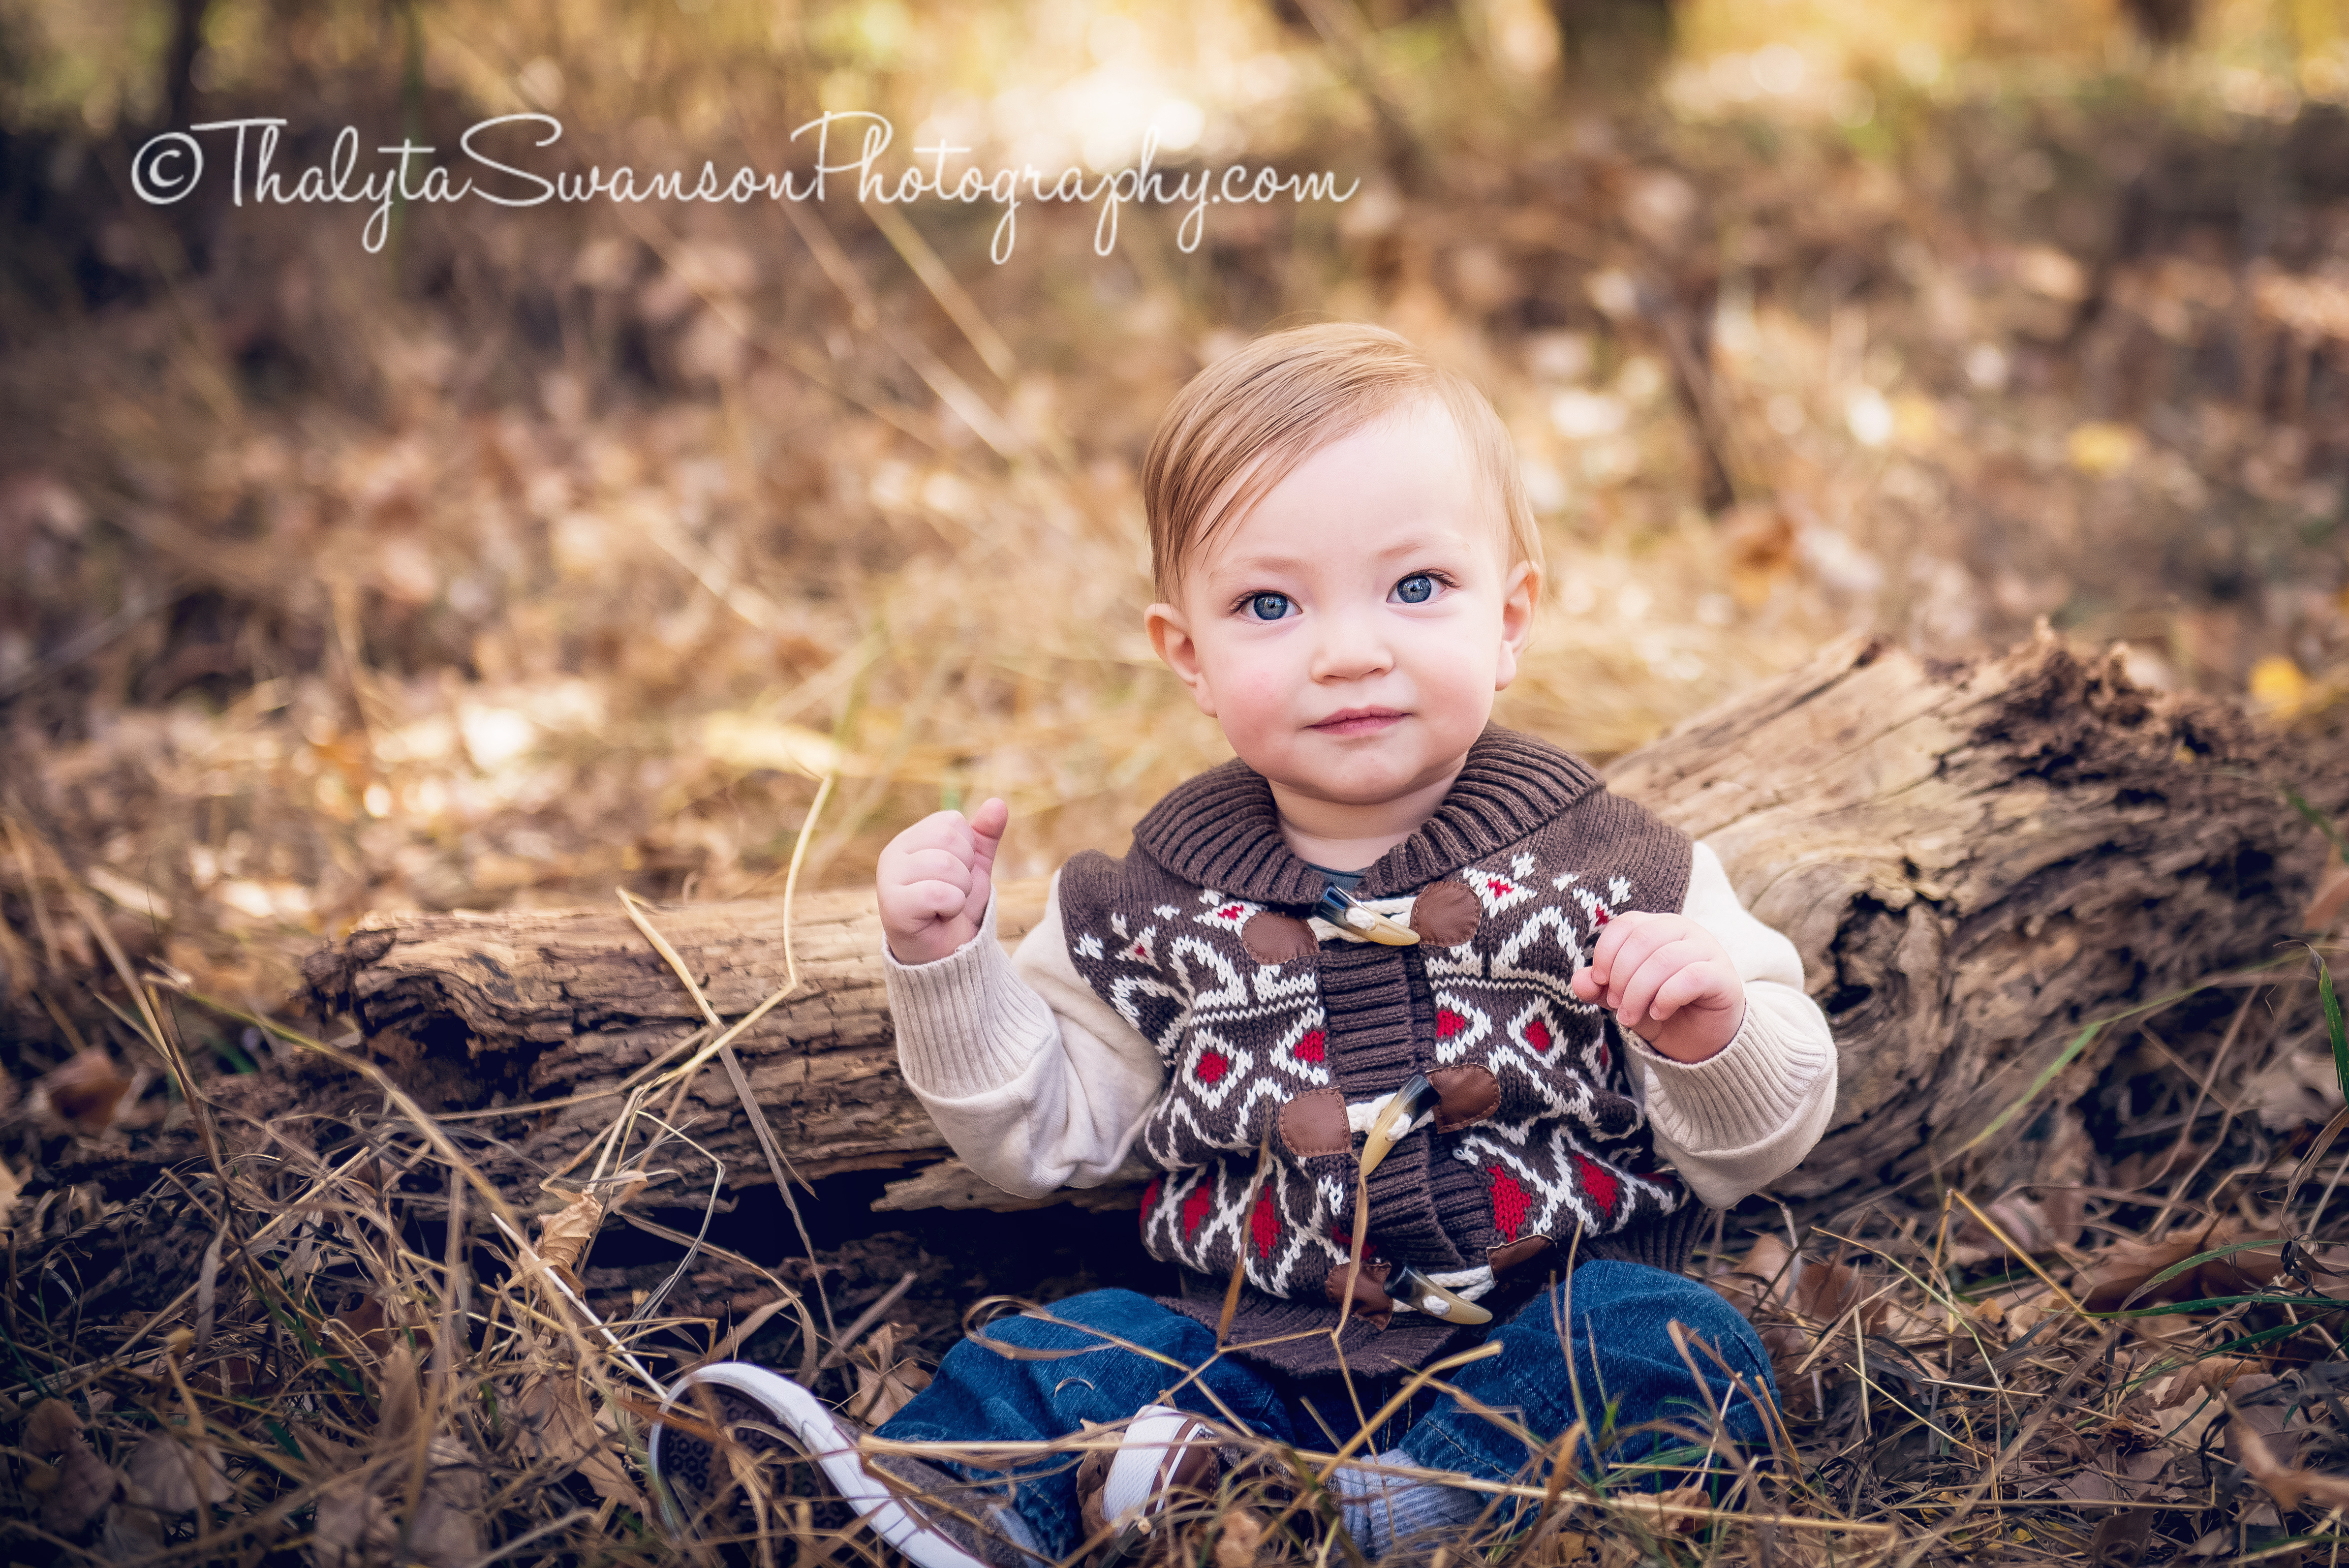 fort-collins-photographer-thalyta-swanson-photography-fall-mini-session-9